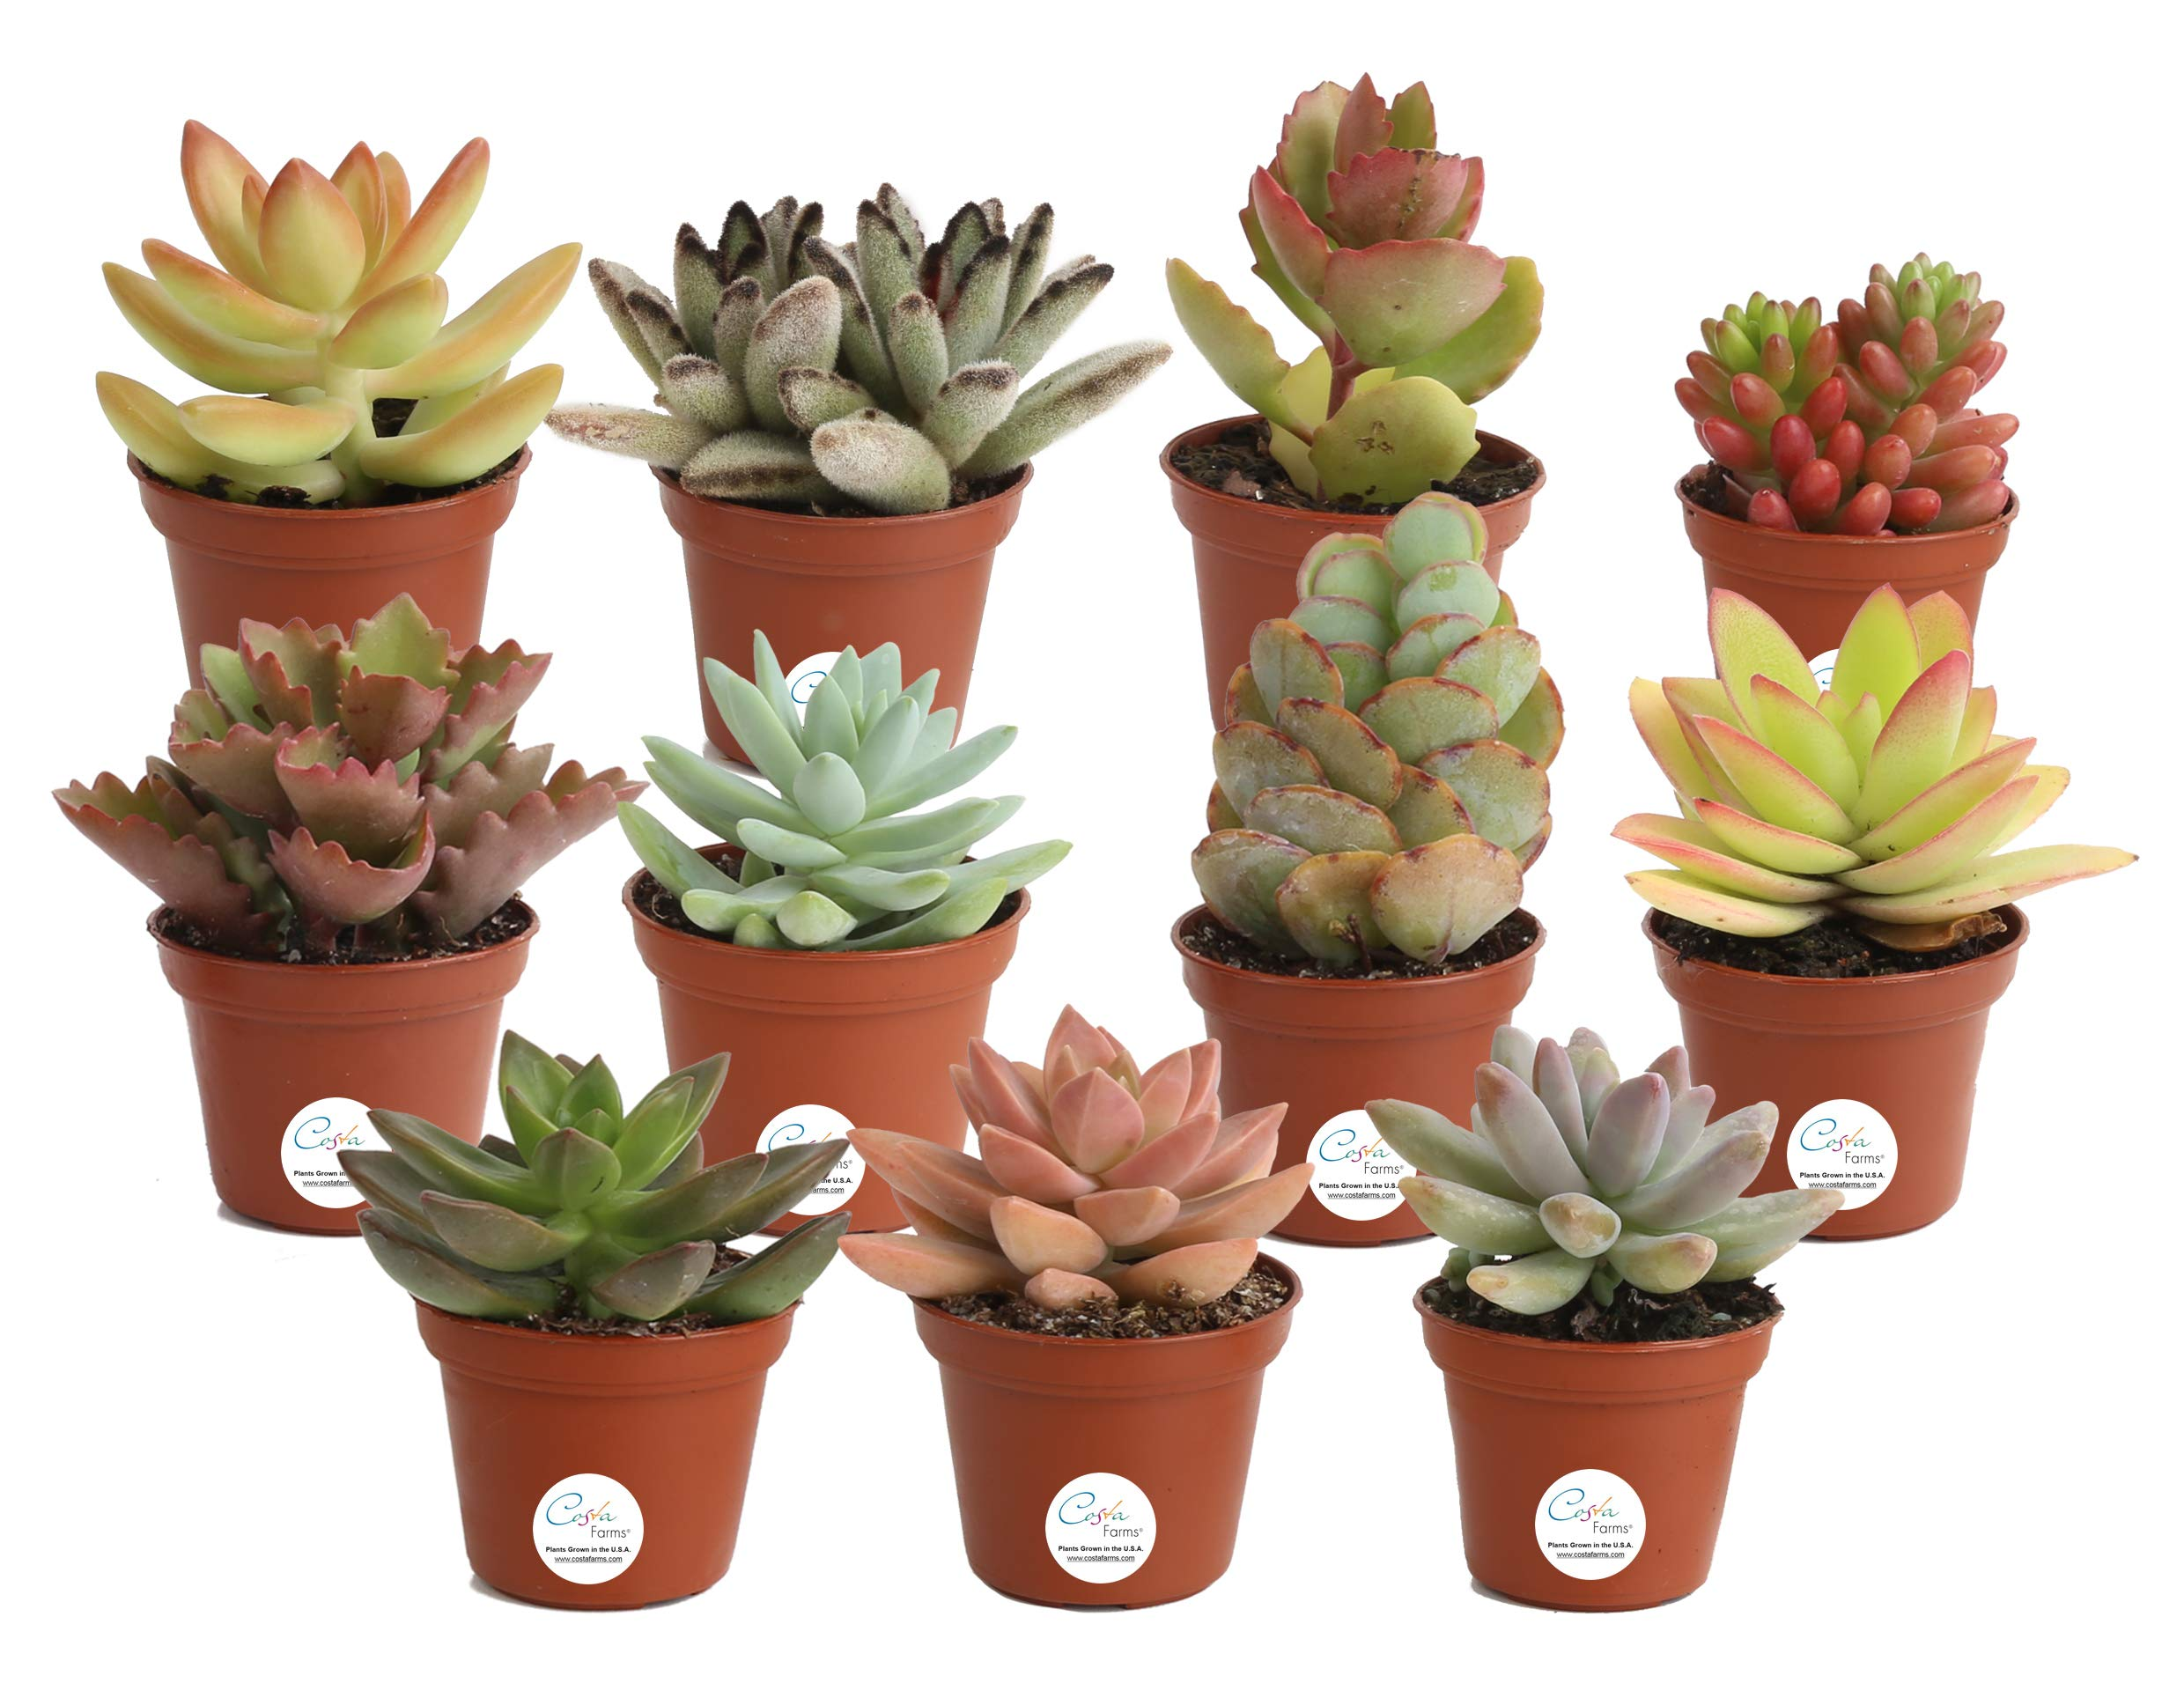 Costa Farms Unique Succulents Indoor Plants 11-Pack, Grower's Choice, 2-Inch Round,